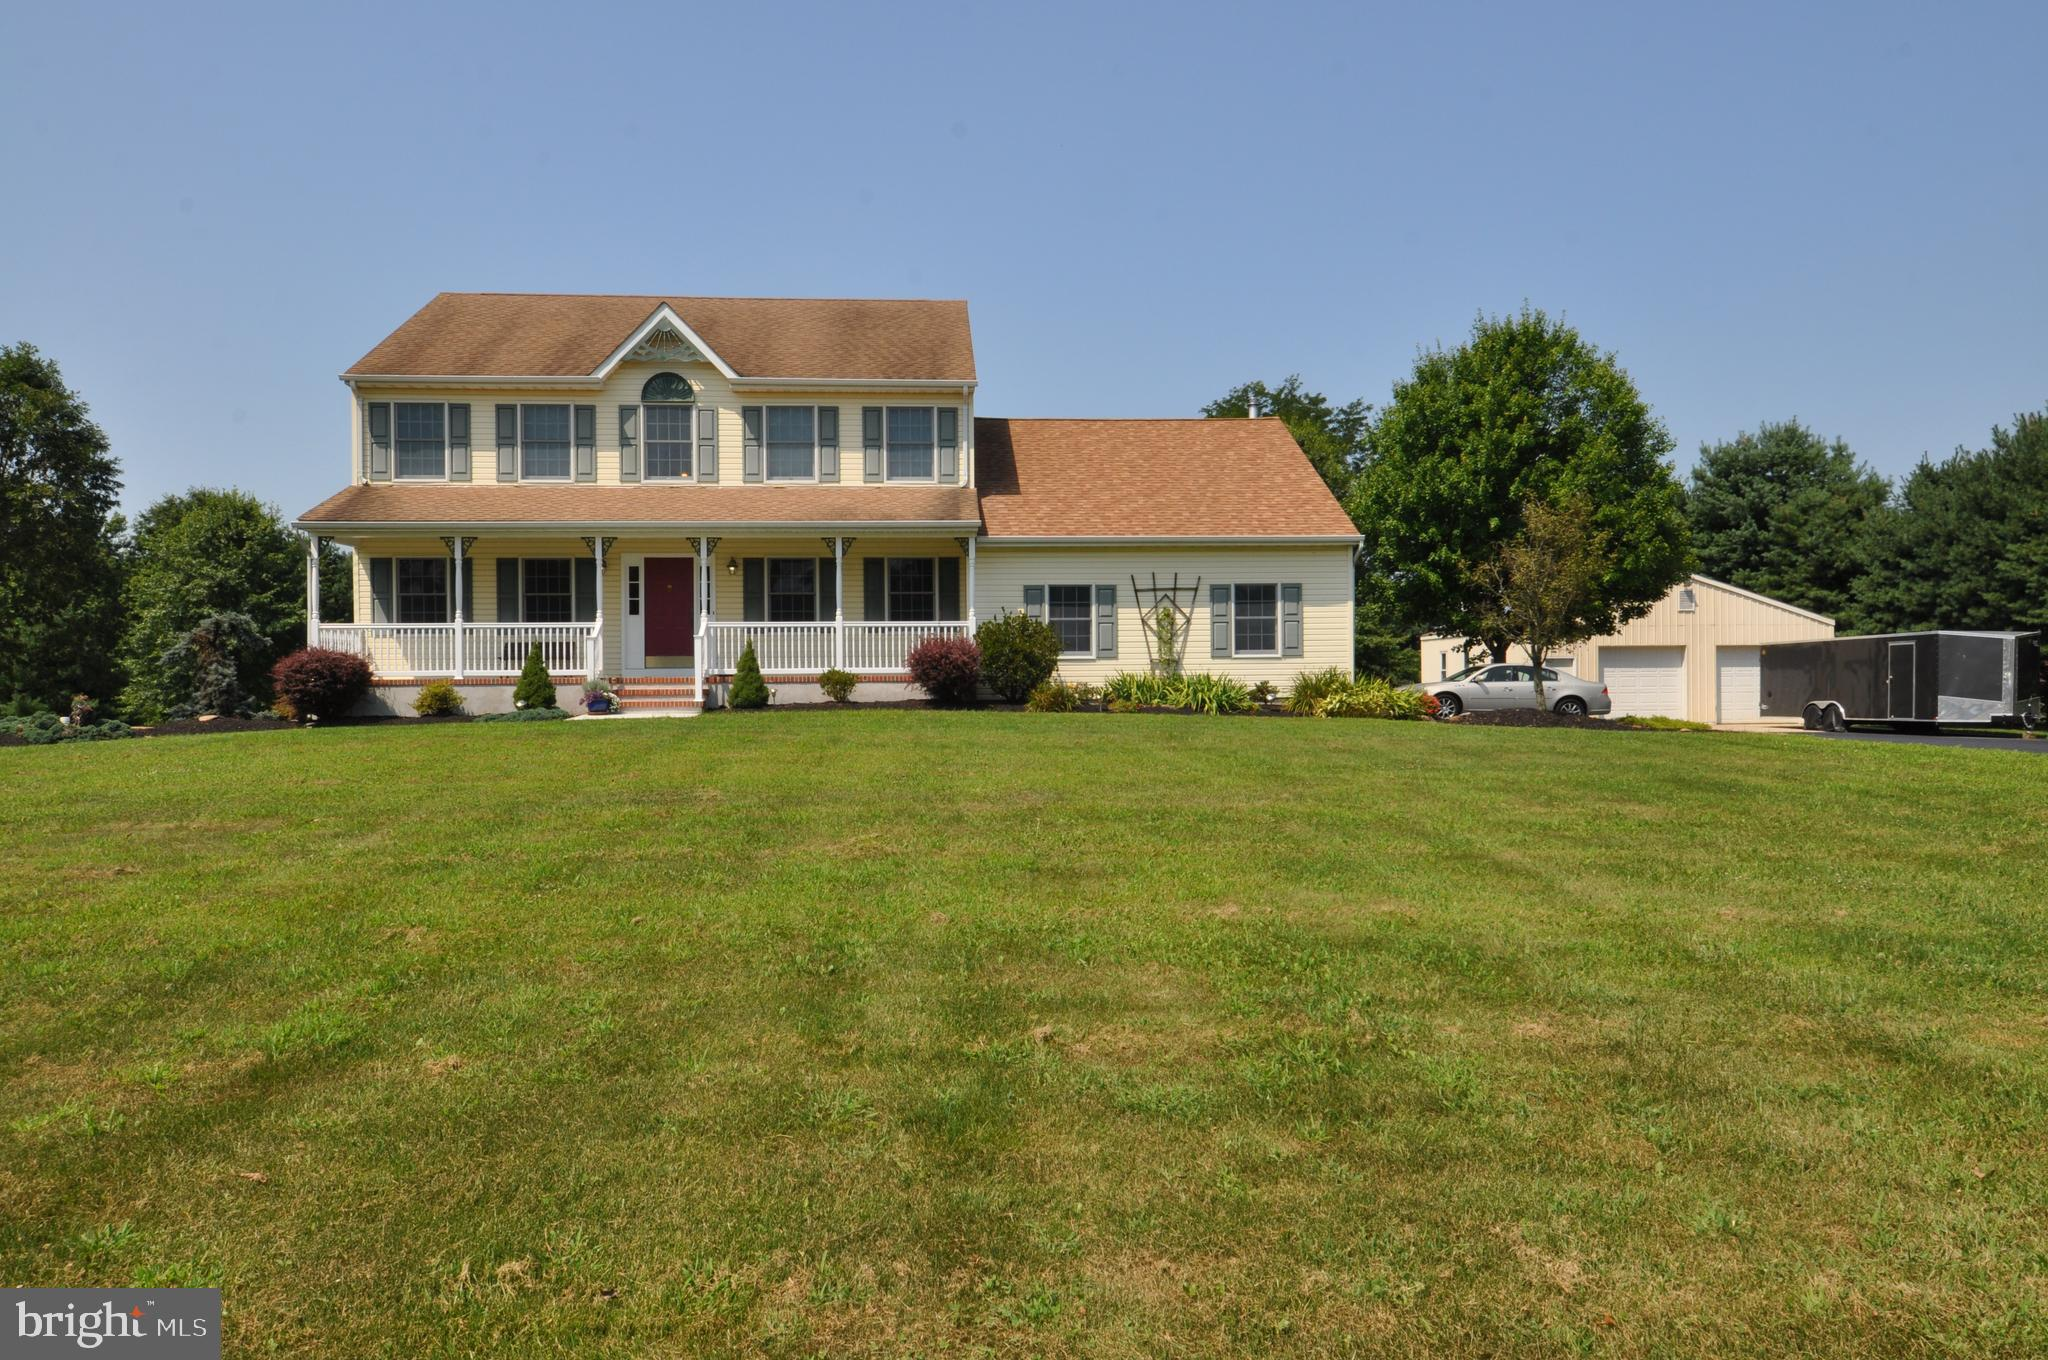 1349 JACKSONVILLE SMITHVILLE ROAD, BORDENTOWN, NJ 08505